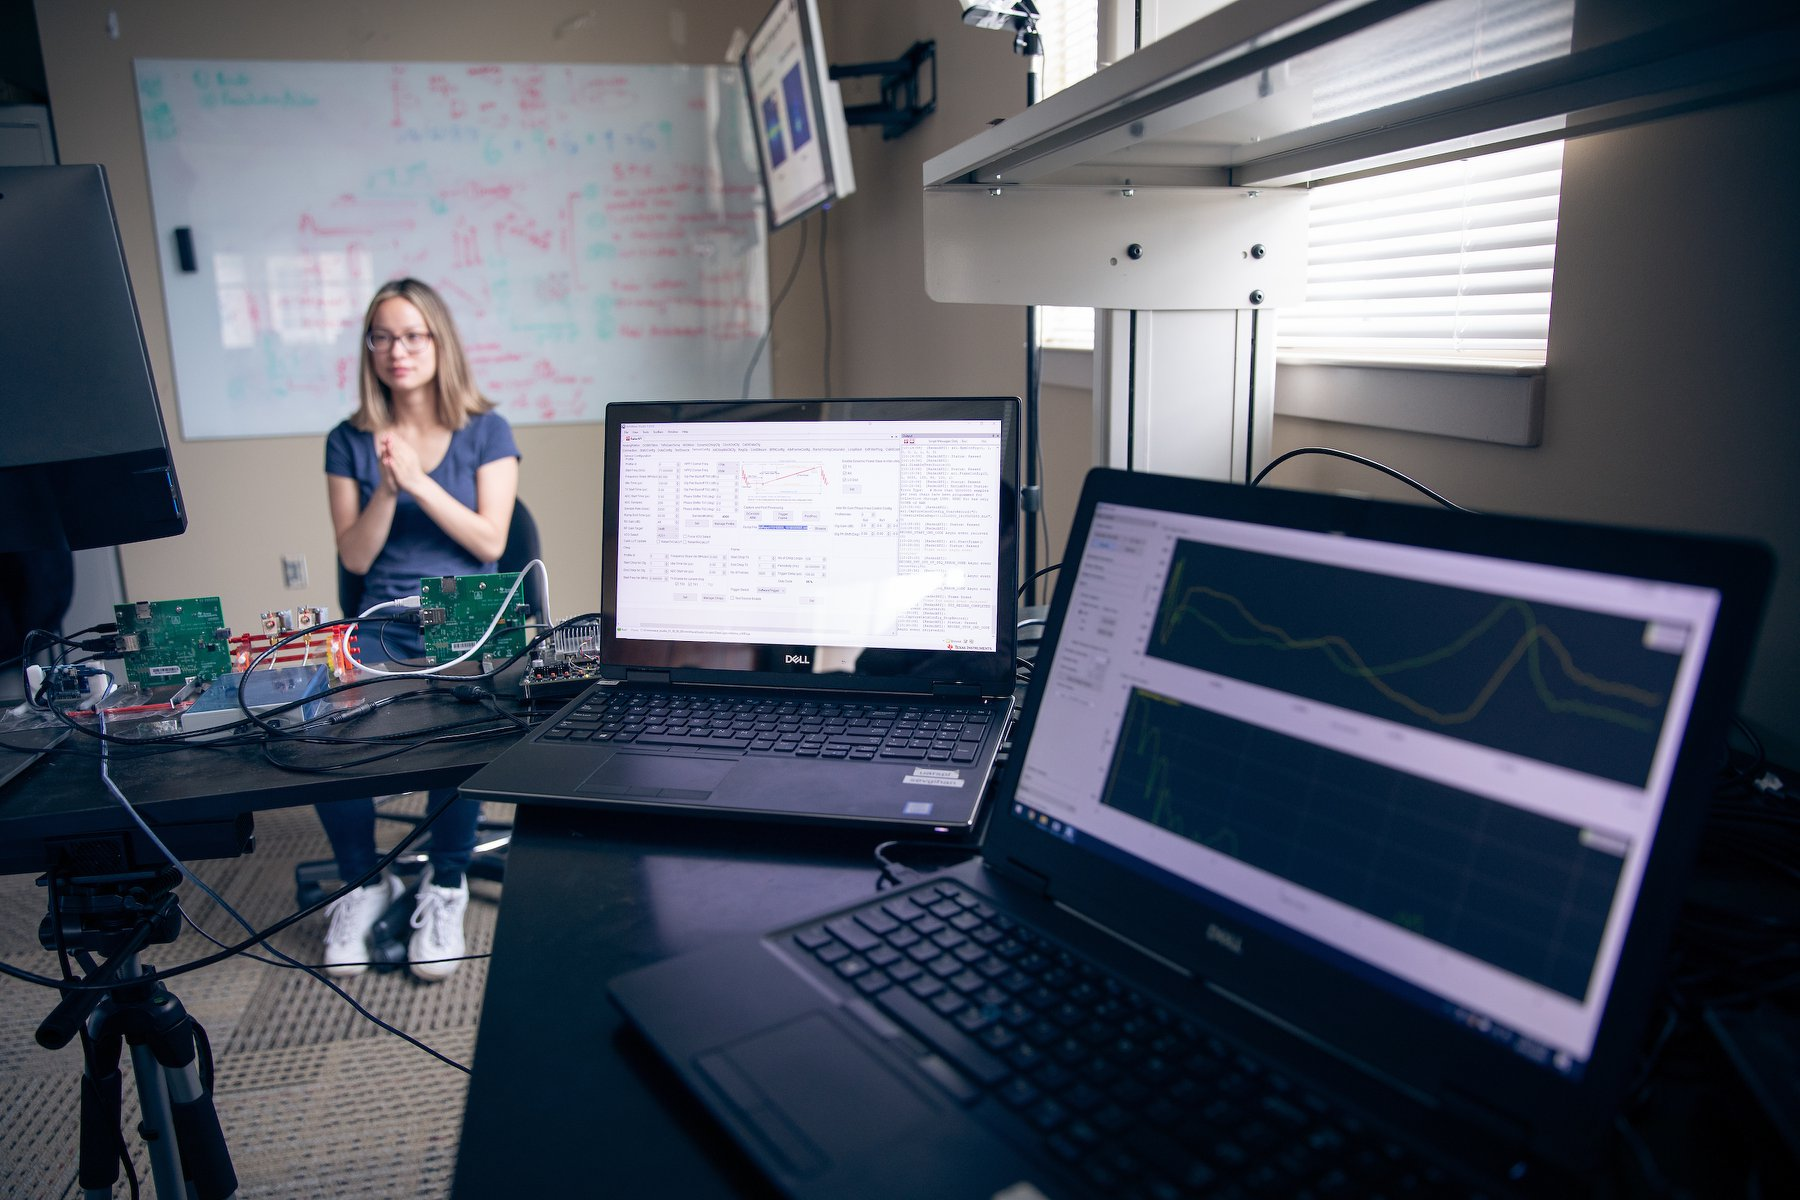 Facebook photo of two laptops, wires, and a student sitting with whiteboard in background